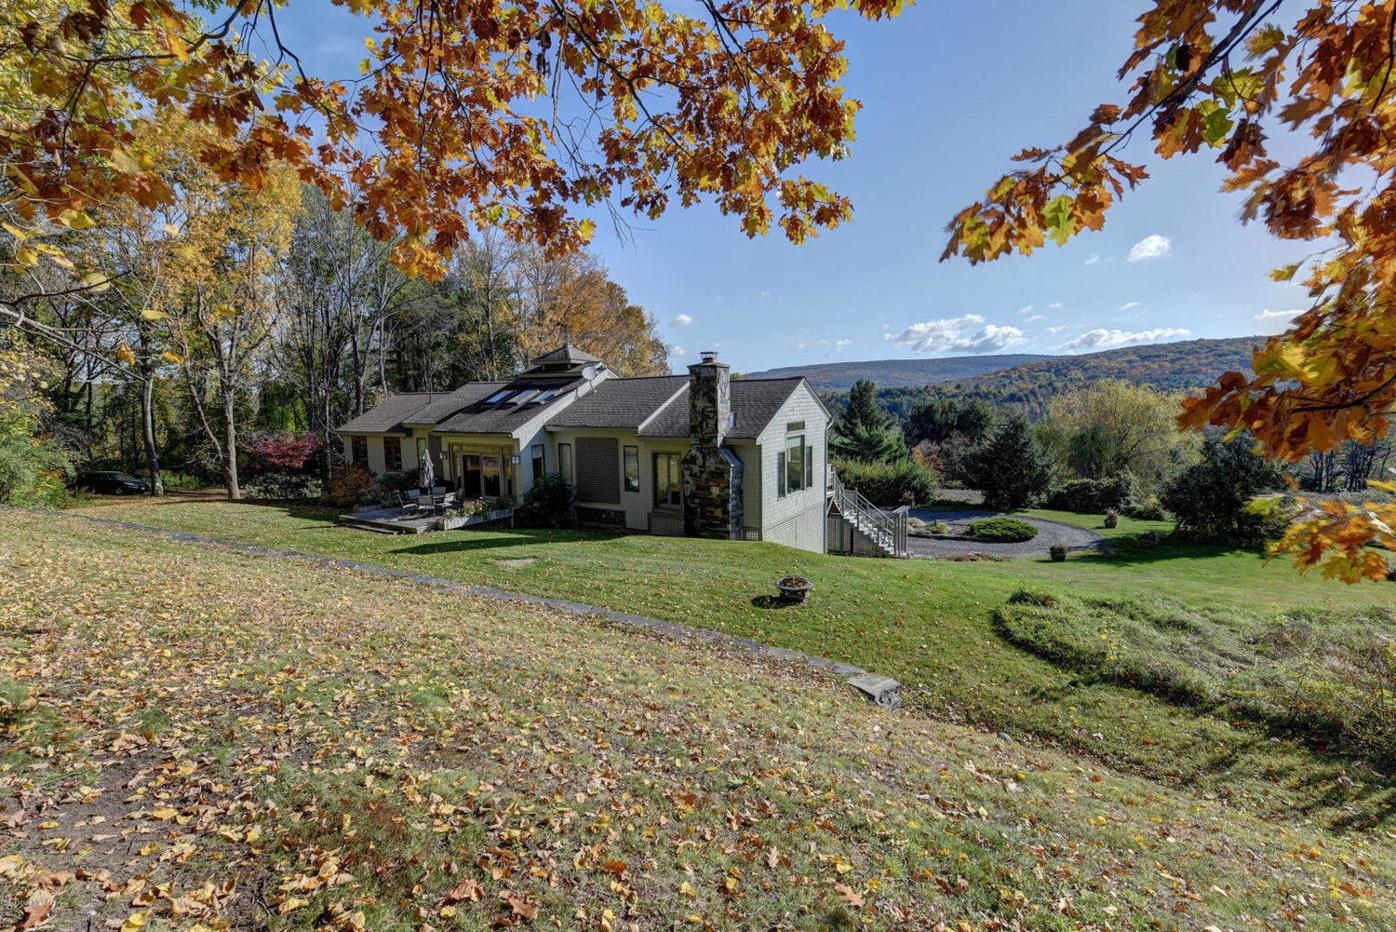 Spacious inside and out: West Stockbridge home on market for $795,000